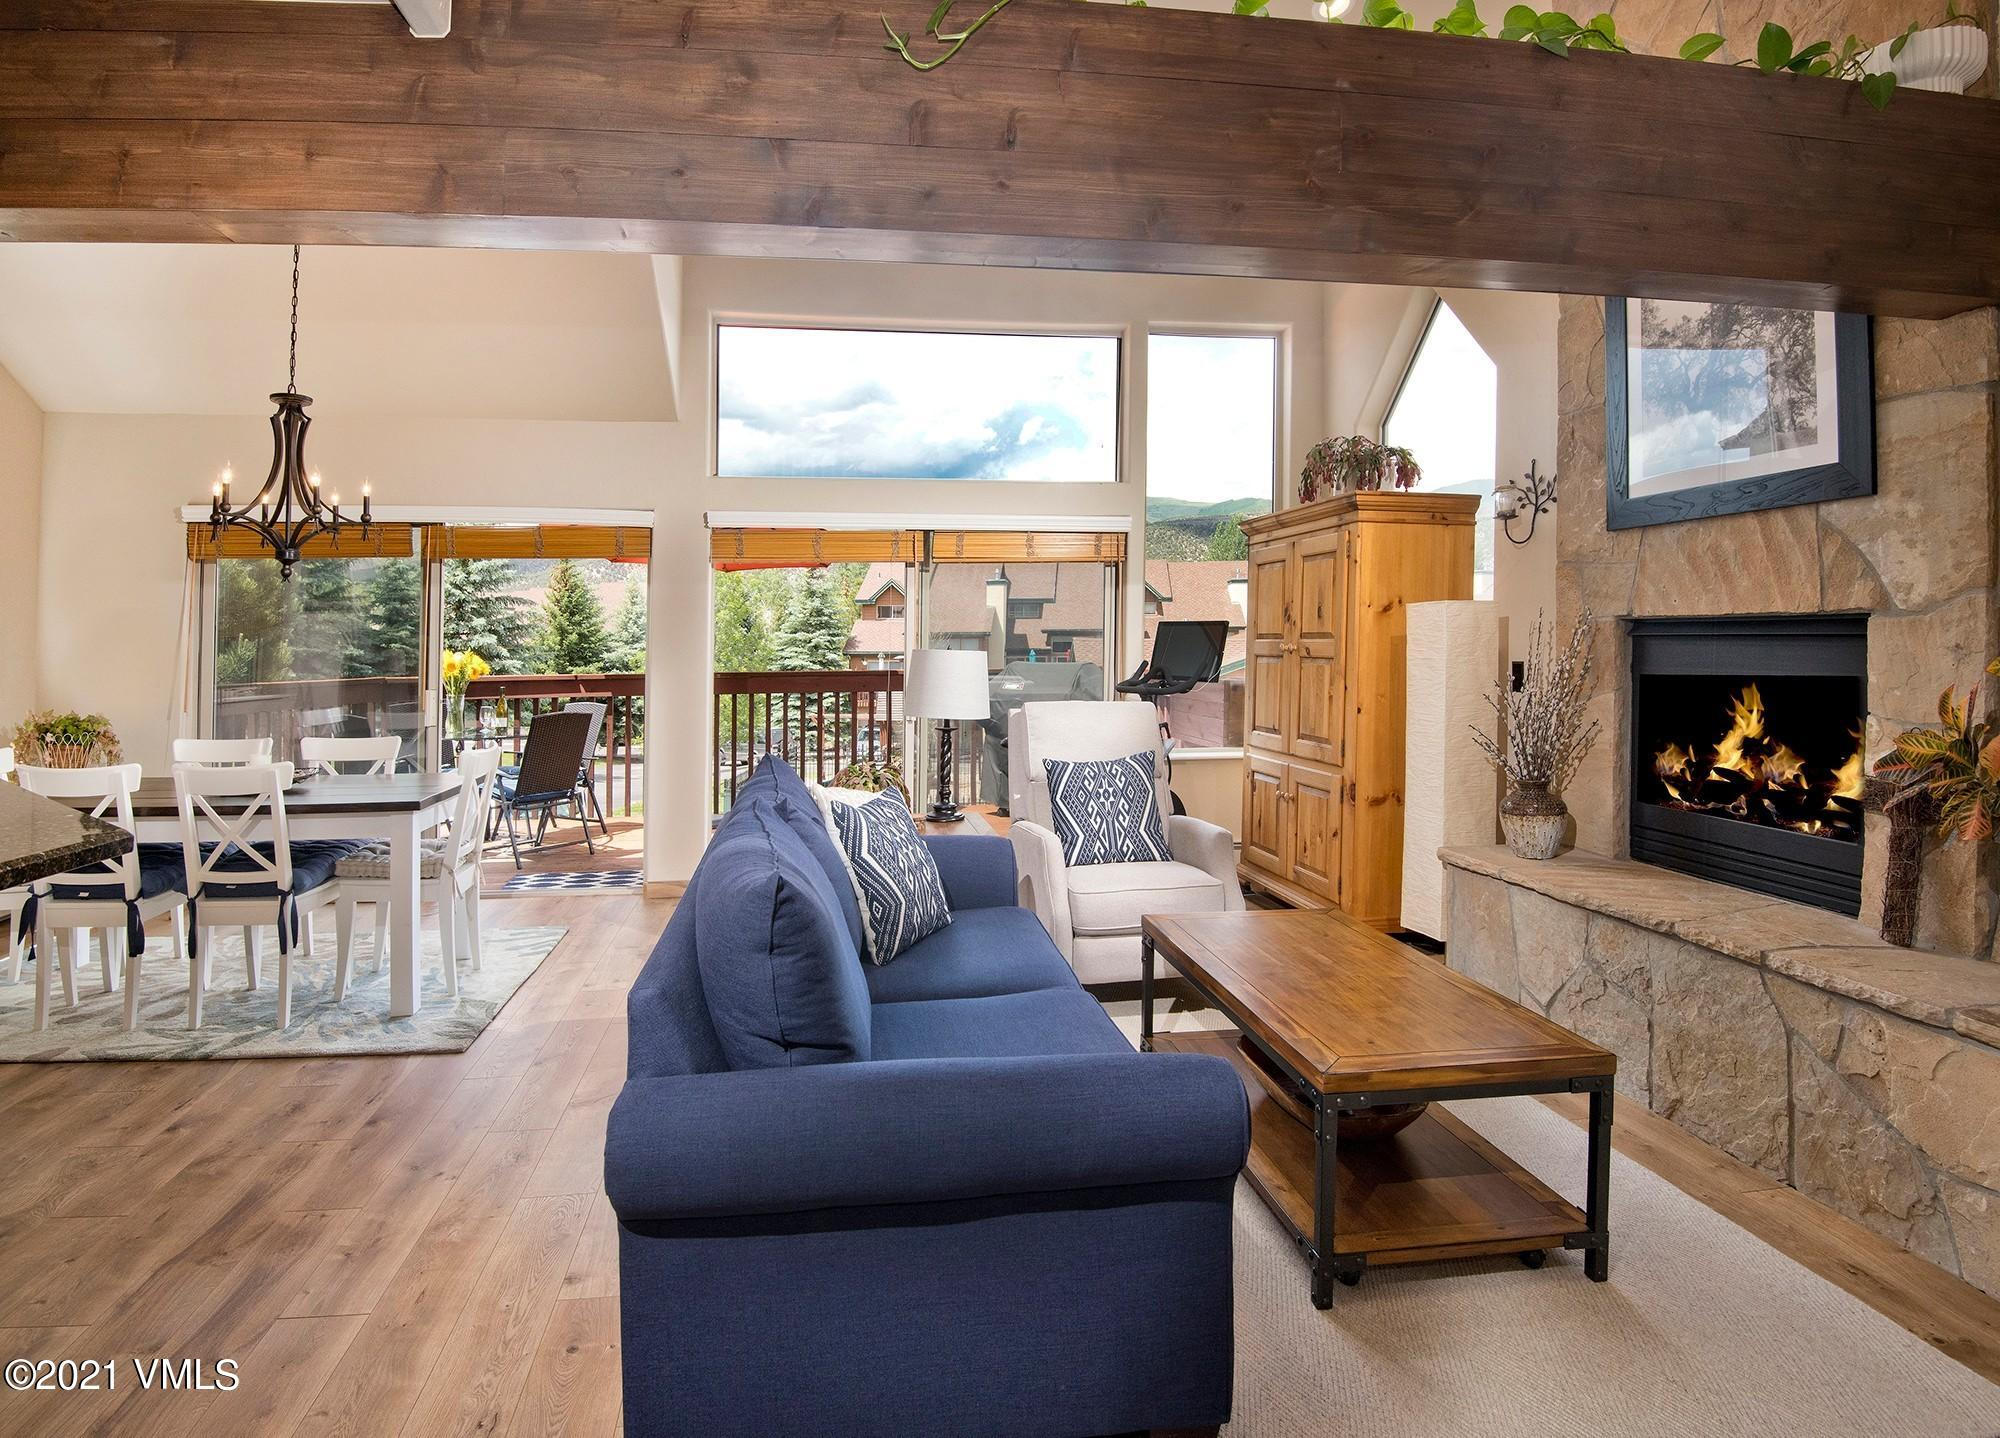 End residence backing up to open space with tons of natural light, large decks and vaulted ceilings.  Each bedroom has its own full bath including the fully equipped mother in law suite. Two car garage plus covered parking for two. Community clubhouse, pool and hot tub. Blocks  to schools and all that Riverwalk has to offer. Hurry, this one won't last!